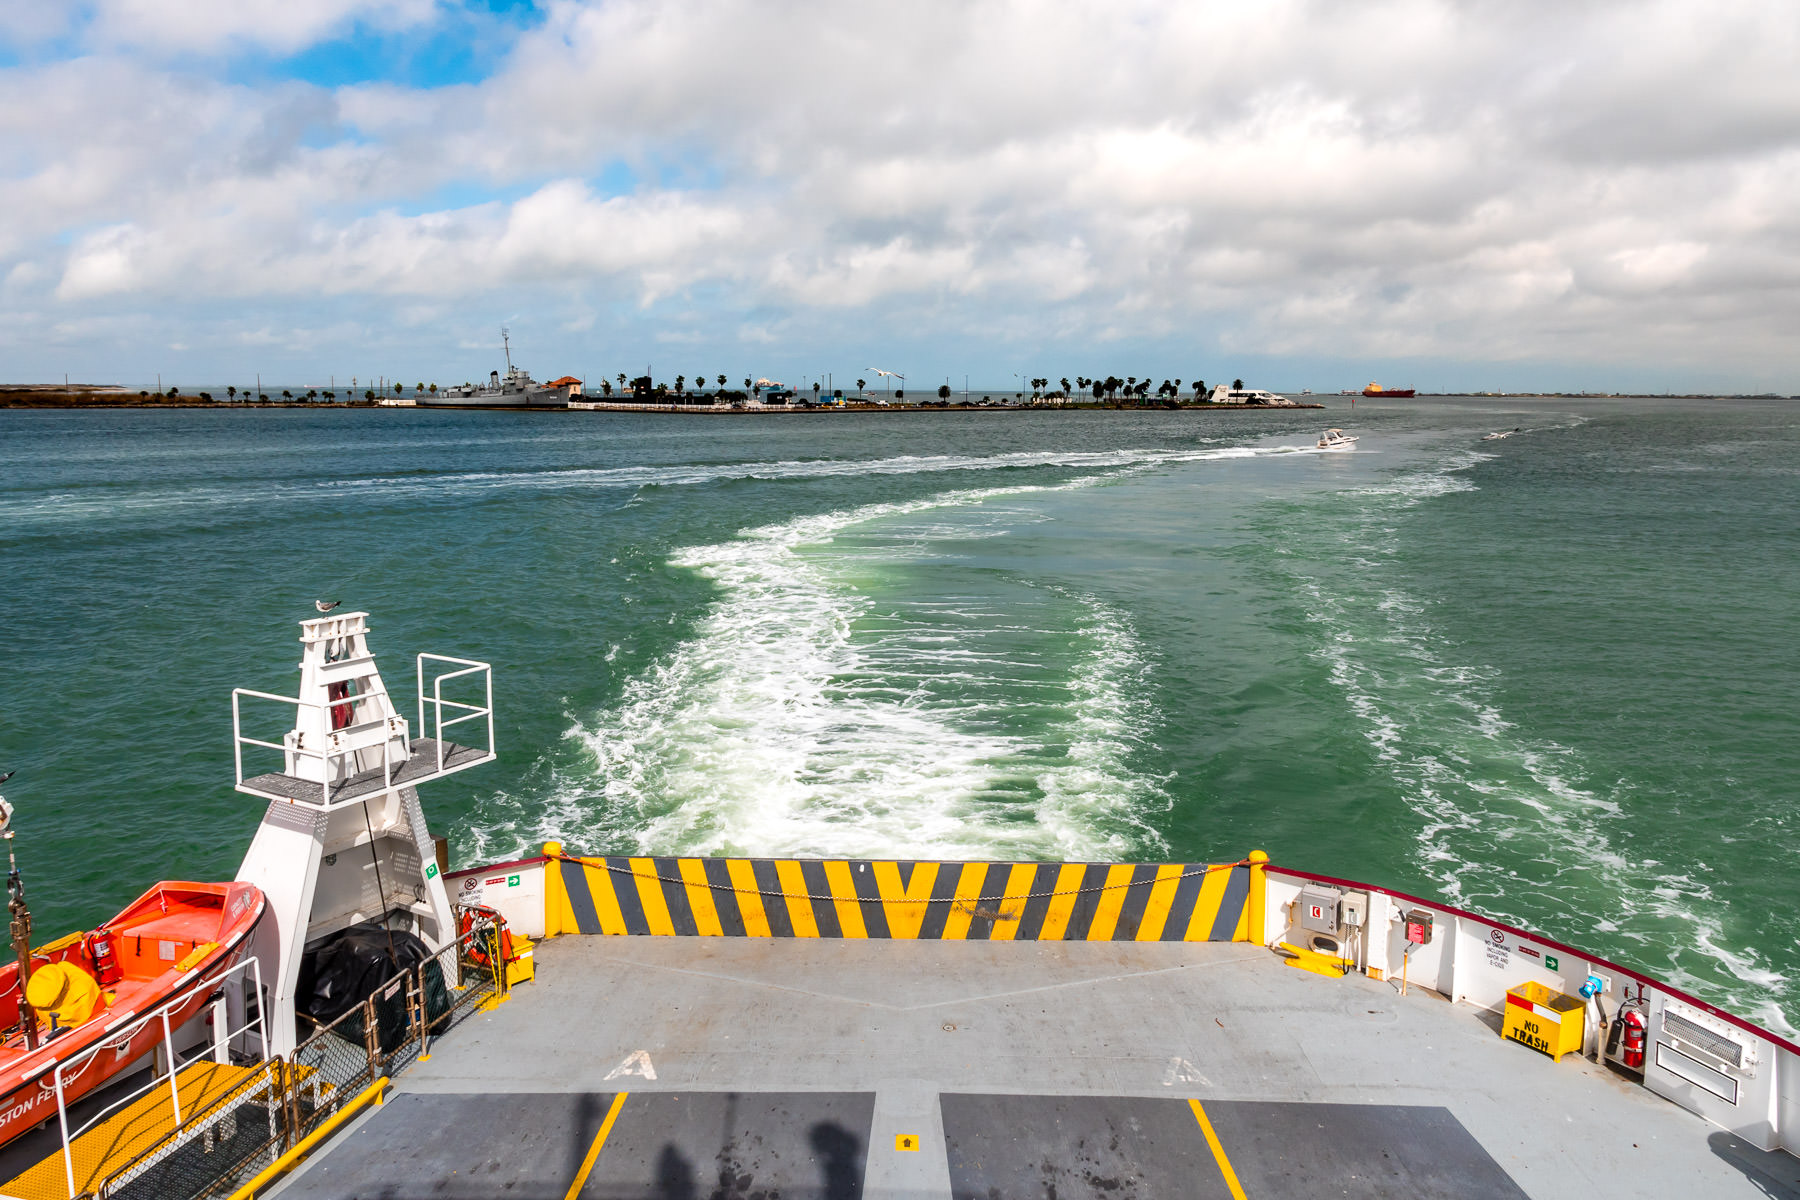 The Galveston-Port Bolivar ferry—a segment of Texas State Highway 87—prepares to dock at the Galveston end of its route.